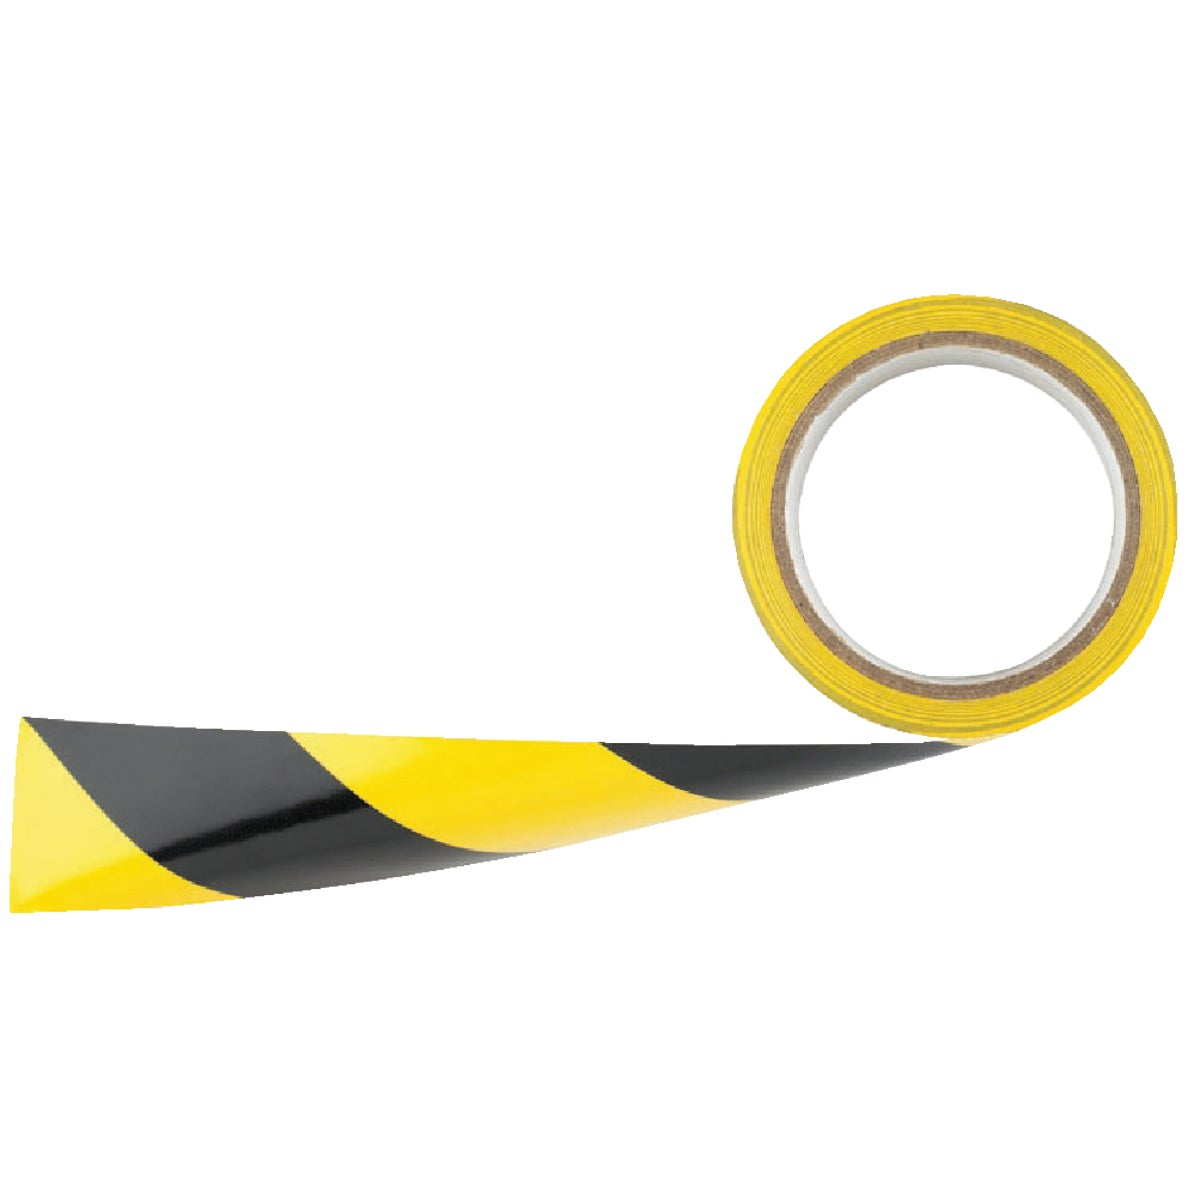 54' YEL/BLK FLOOR TAPE - 2034300 by Irwin Industr Tool